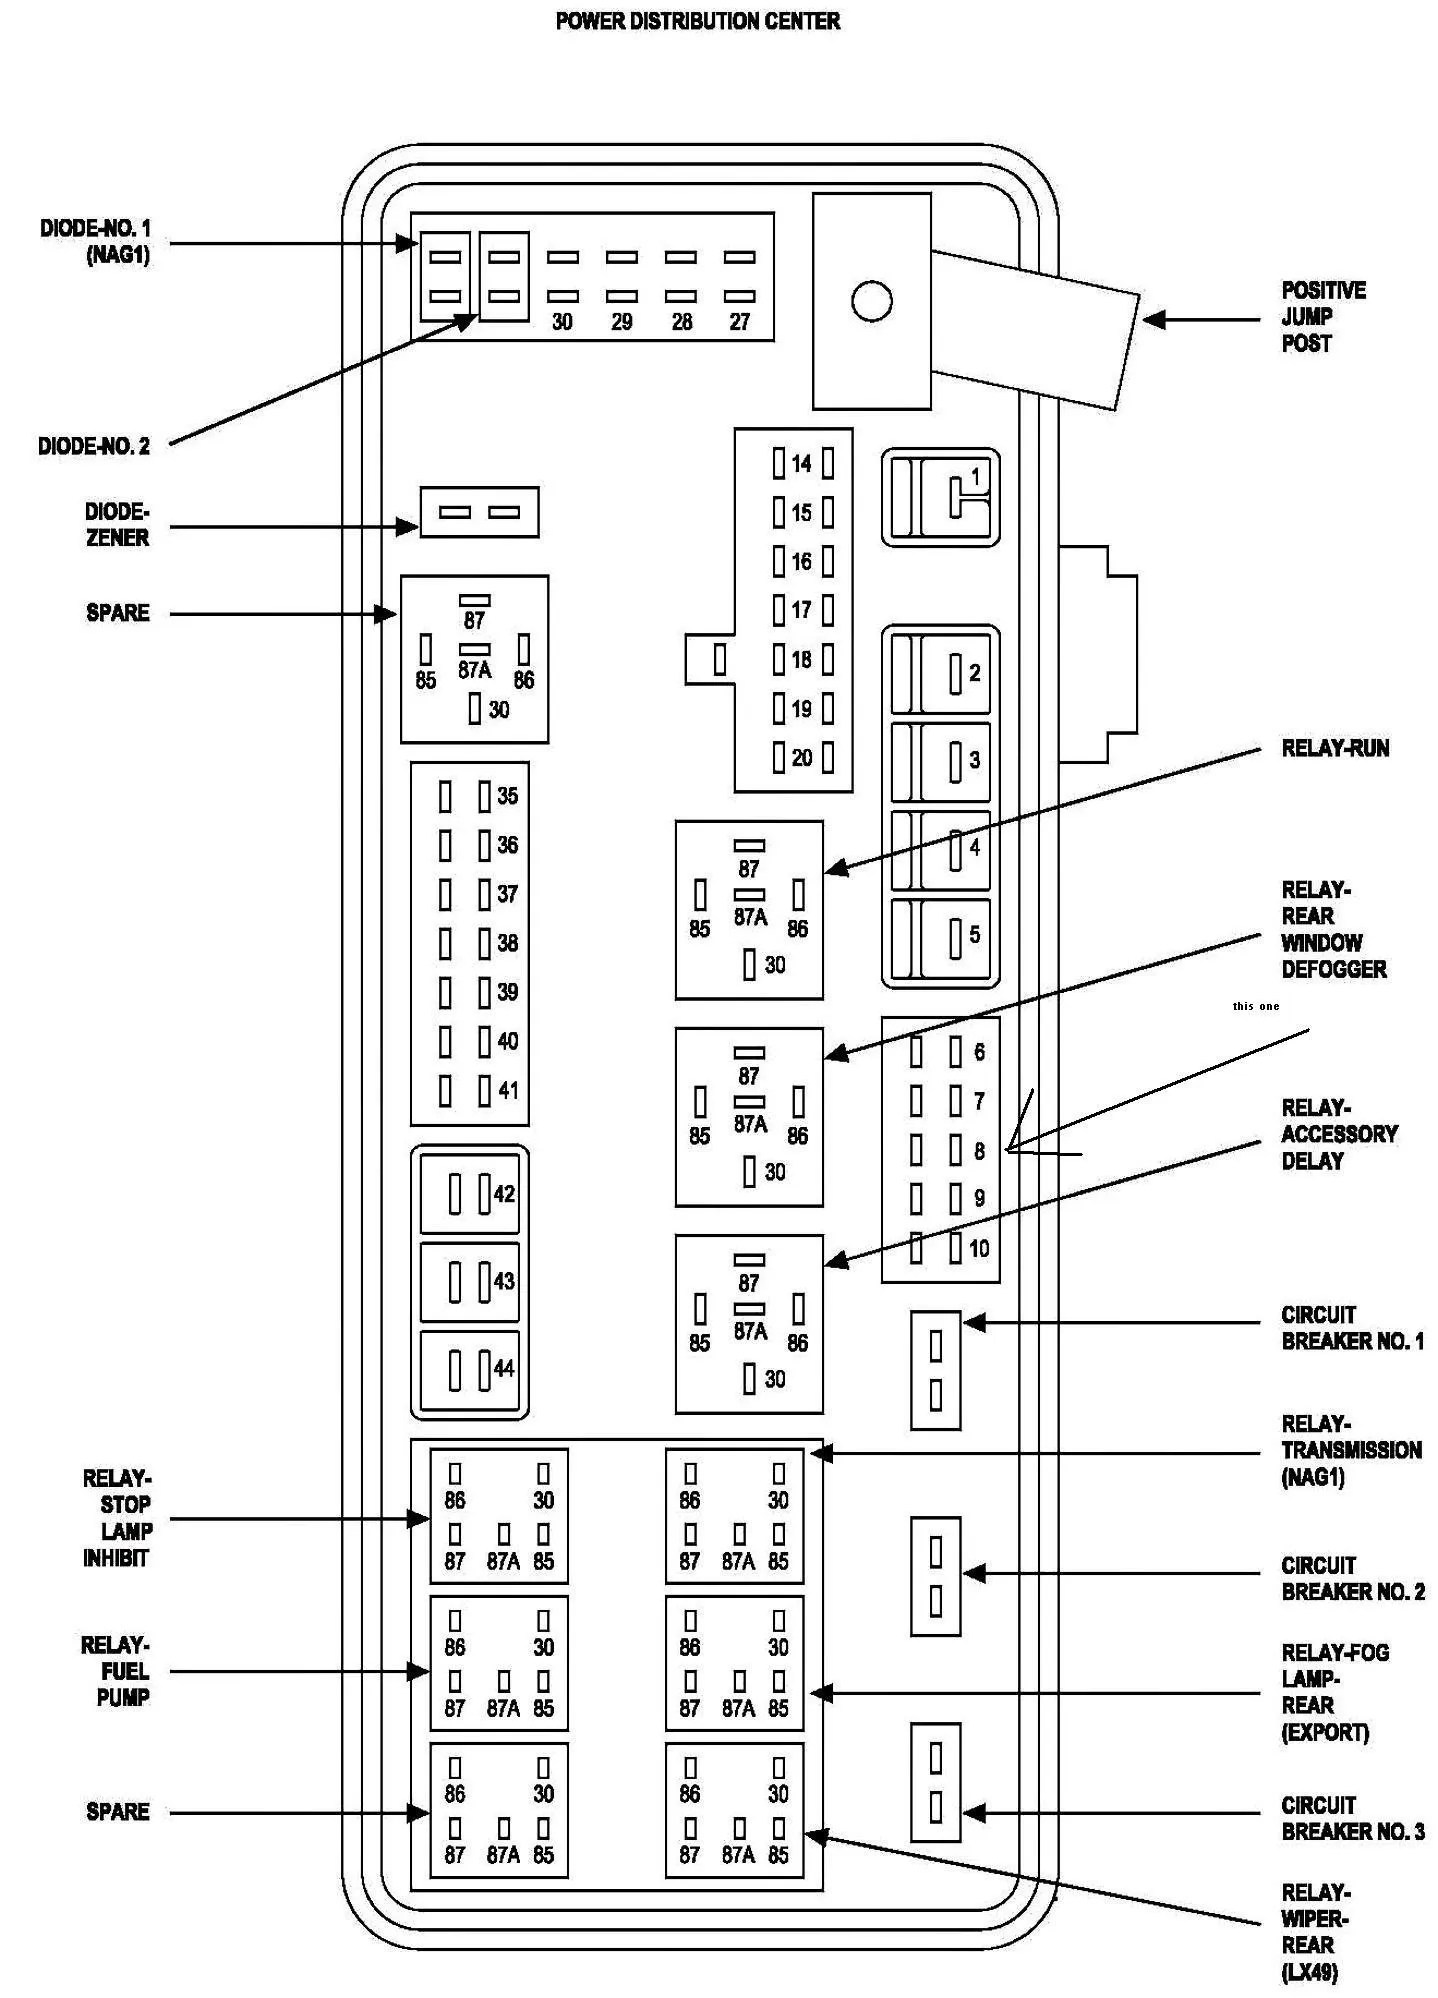 hight resolution of 2014 ram 1500 fuse diagram wiring diagram img 2014 dodge ram 1500 fuse box location 2015 dodge ram 1500 fuse diagram